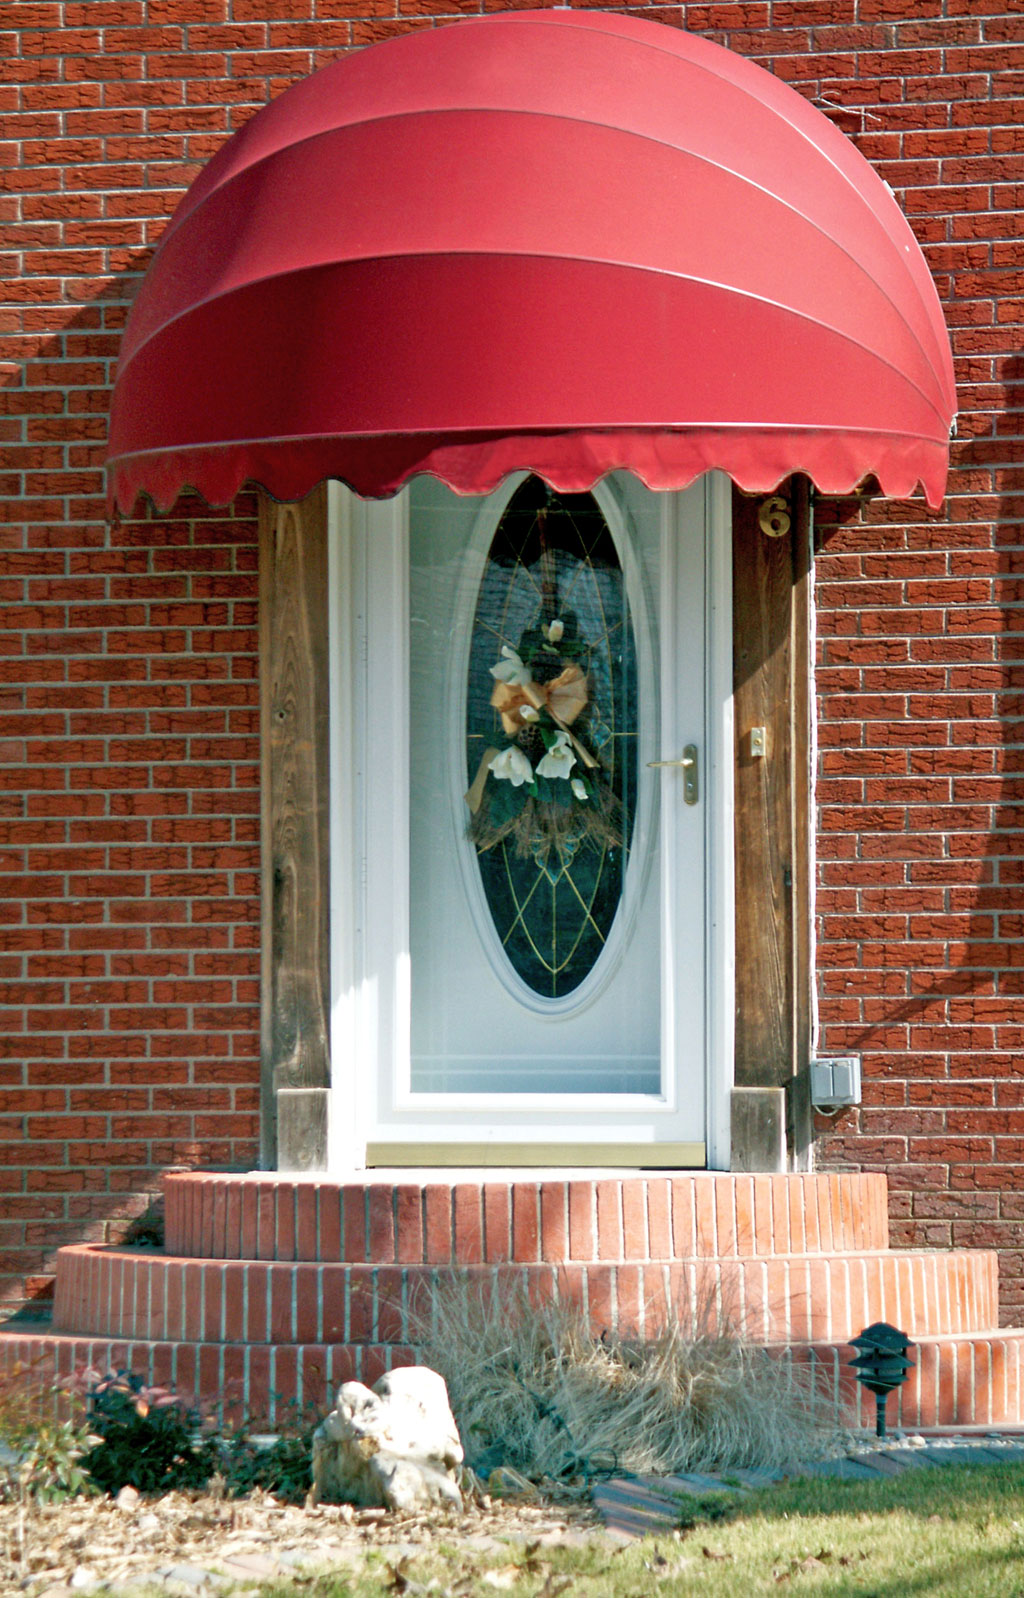 Dome Window Awnings : Seville dome shaped awning